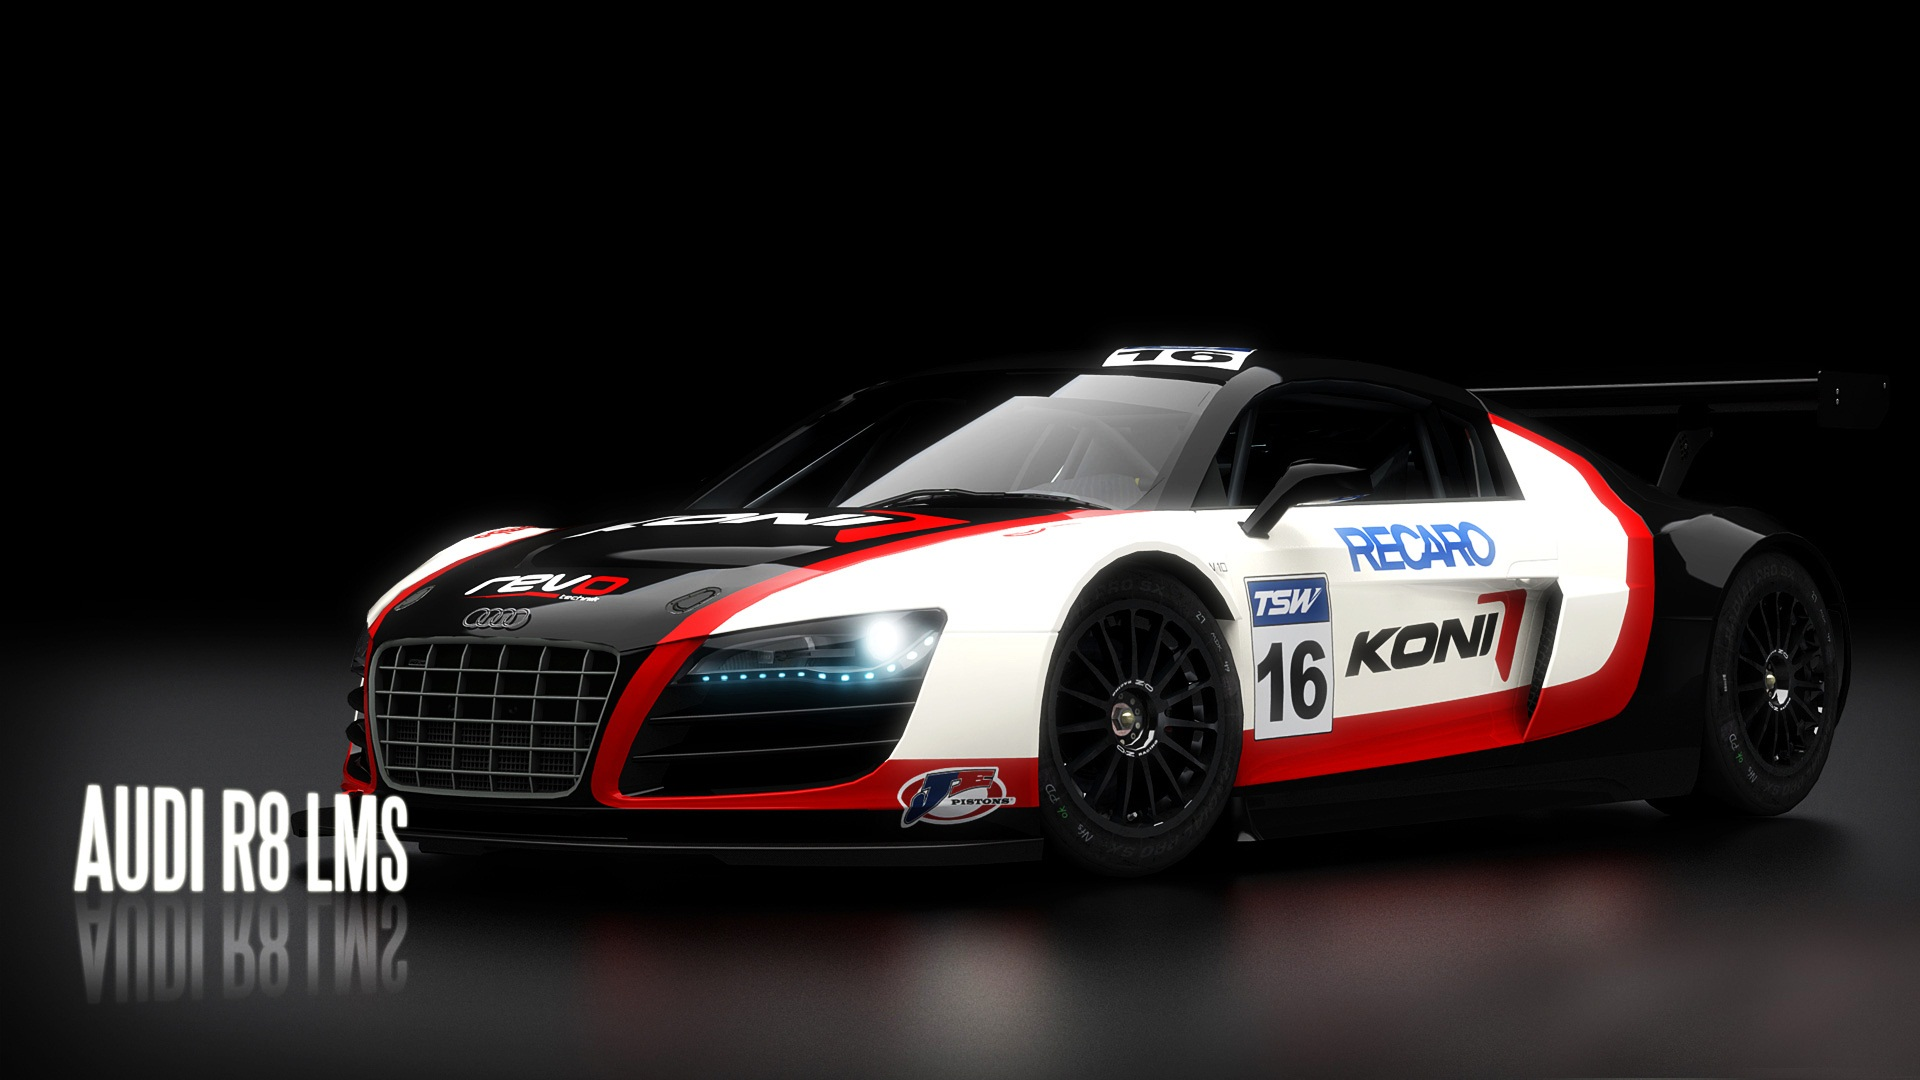 Latest-Audi-r8-lms--2door-sport-car-wallpaper-for-mobile-PC